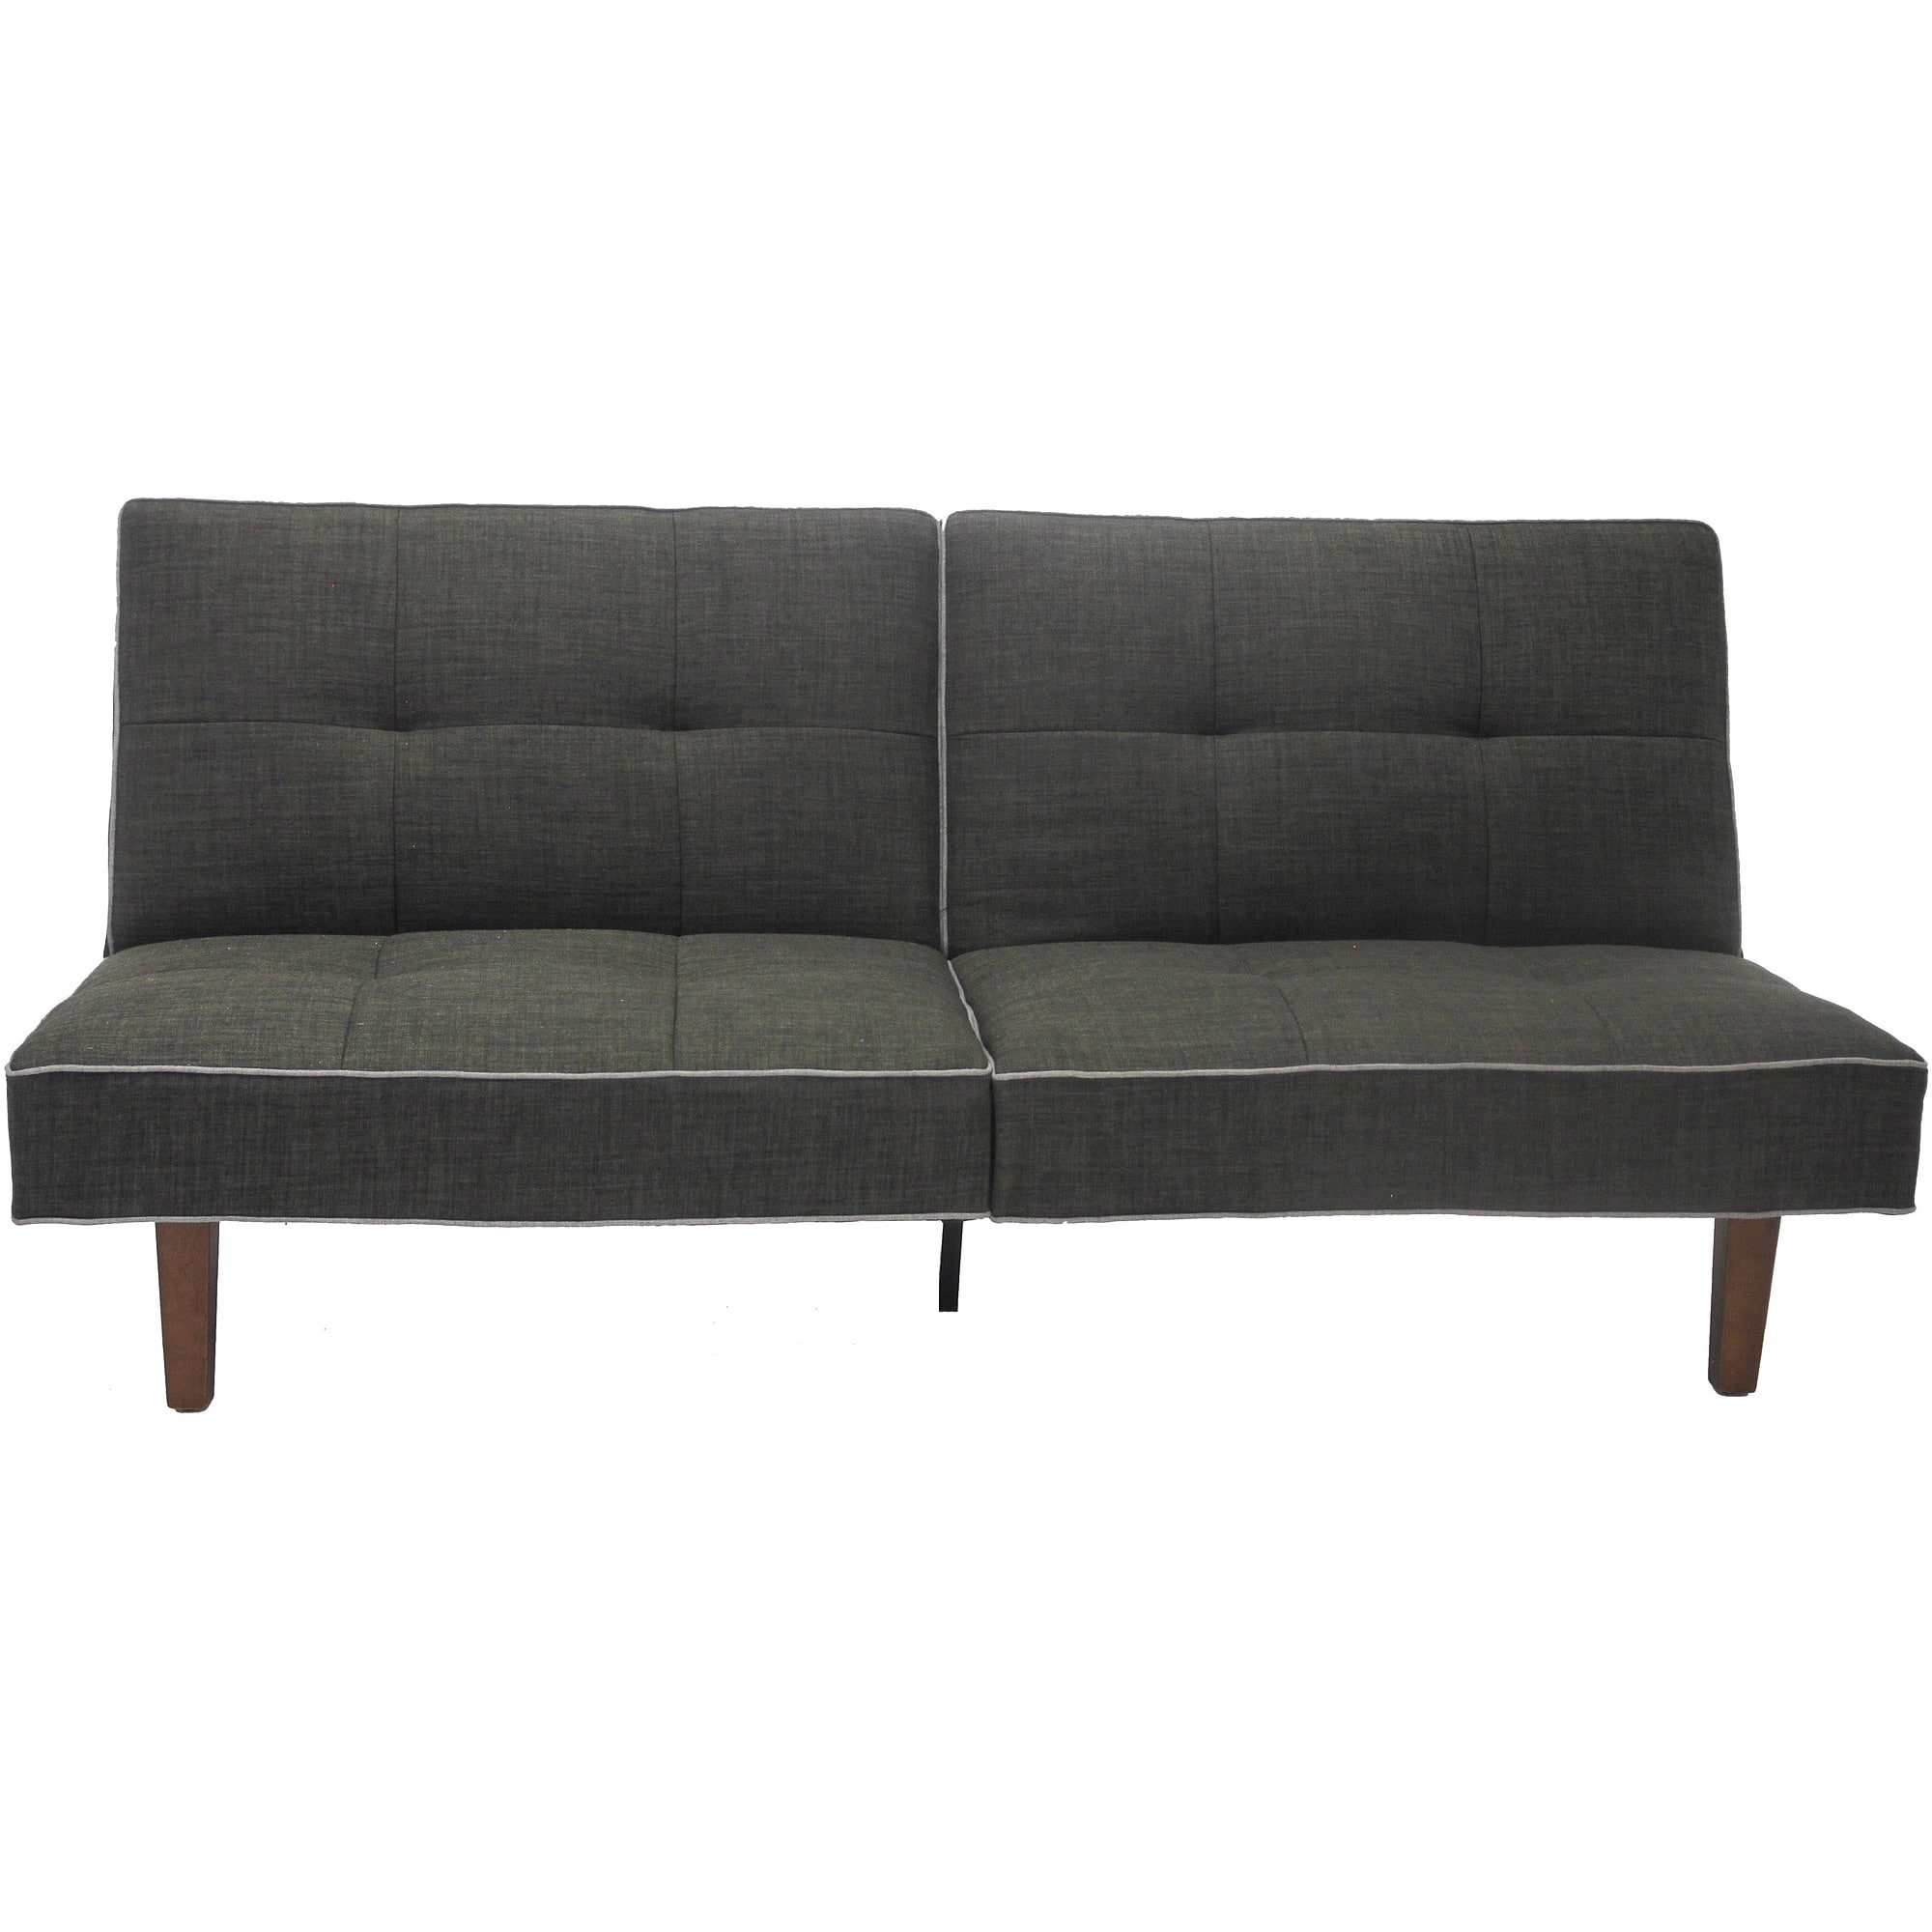 Sectional Sofas Walmart: Kebo Futon Sofa Bed = $99 @walmart With FS